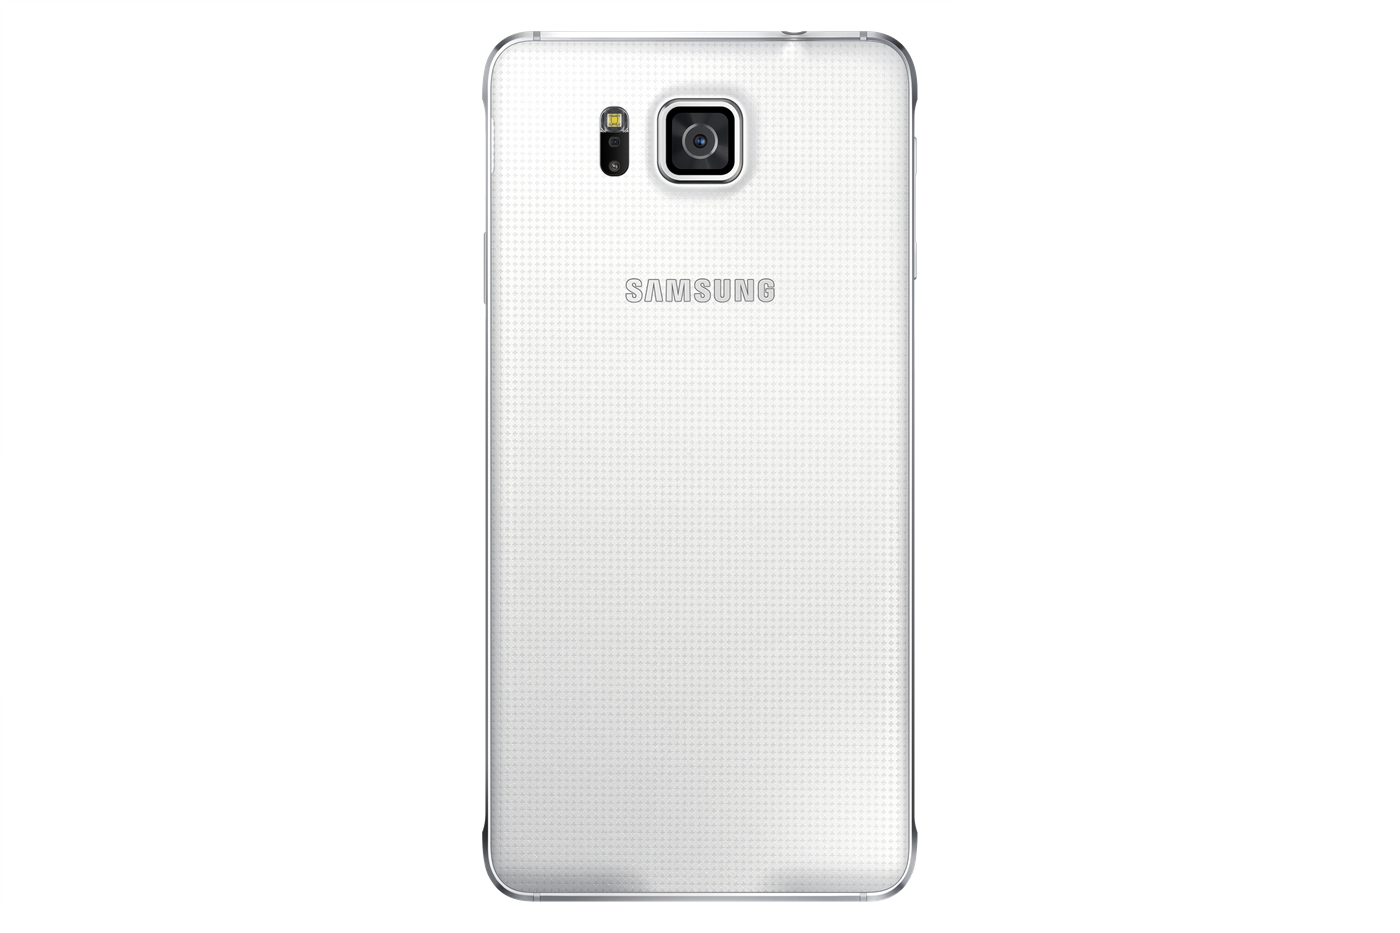 Samsung-Galaxy-Alpha-official-images (9)